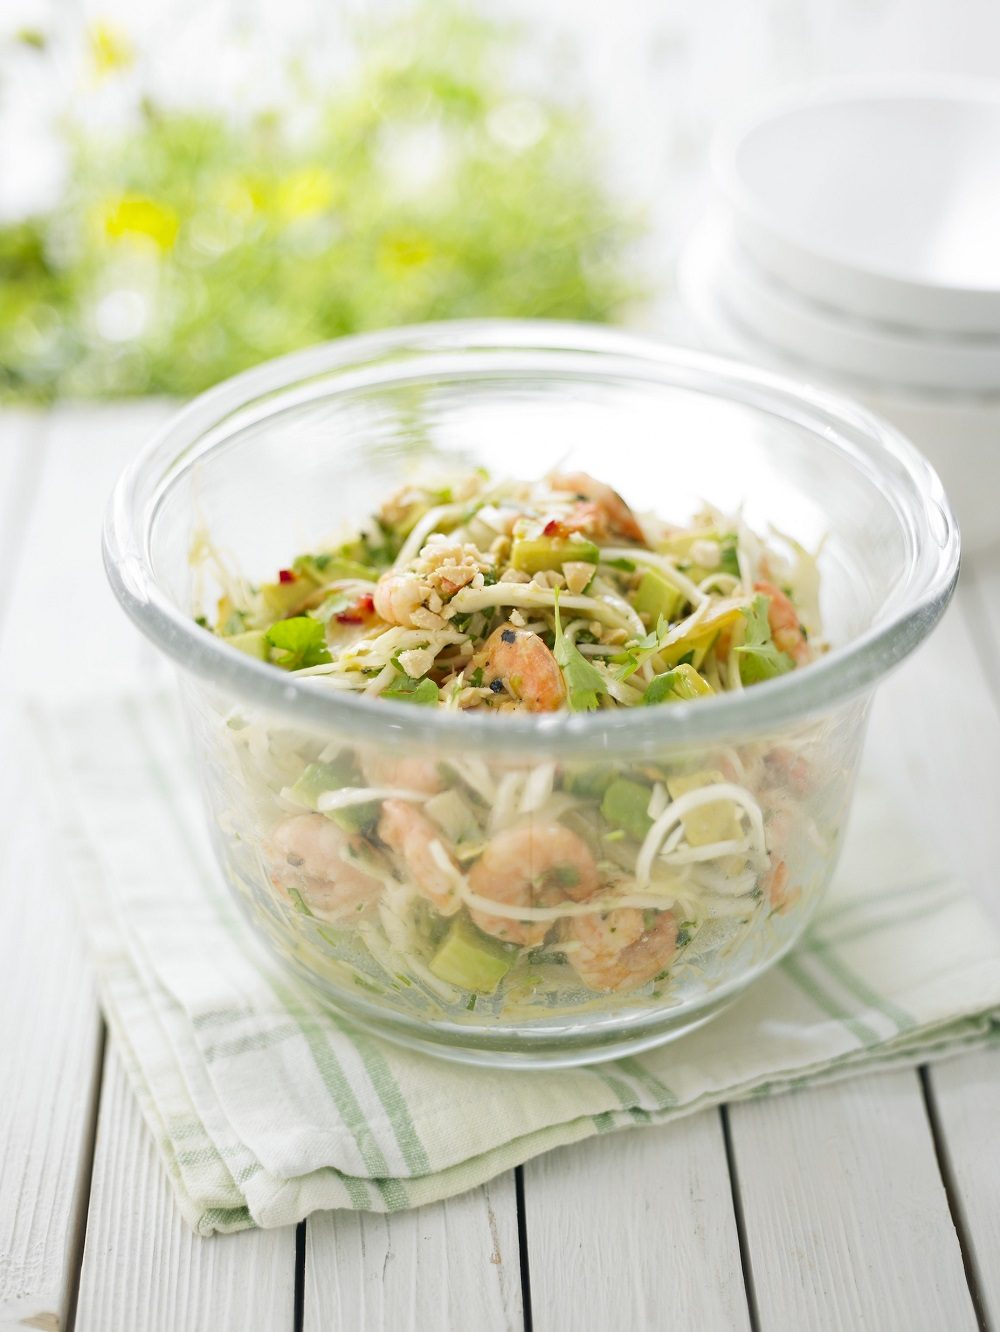 Avocado, Prawn and Cabbage Salad